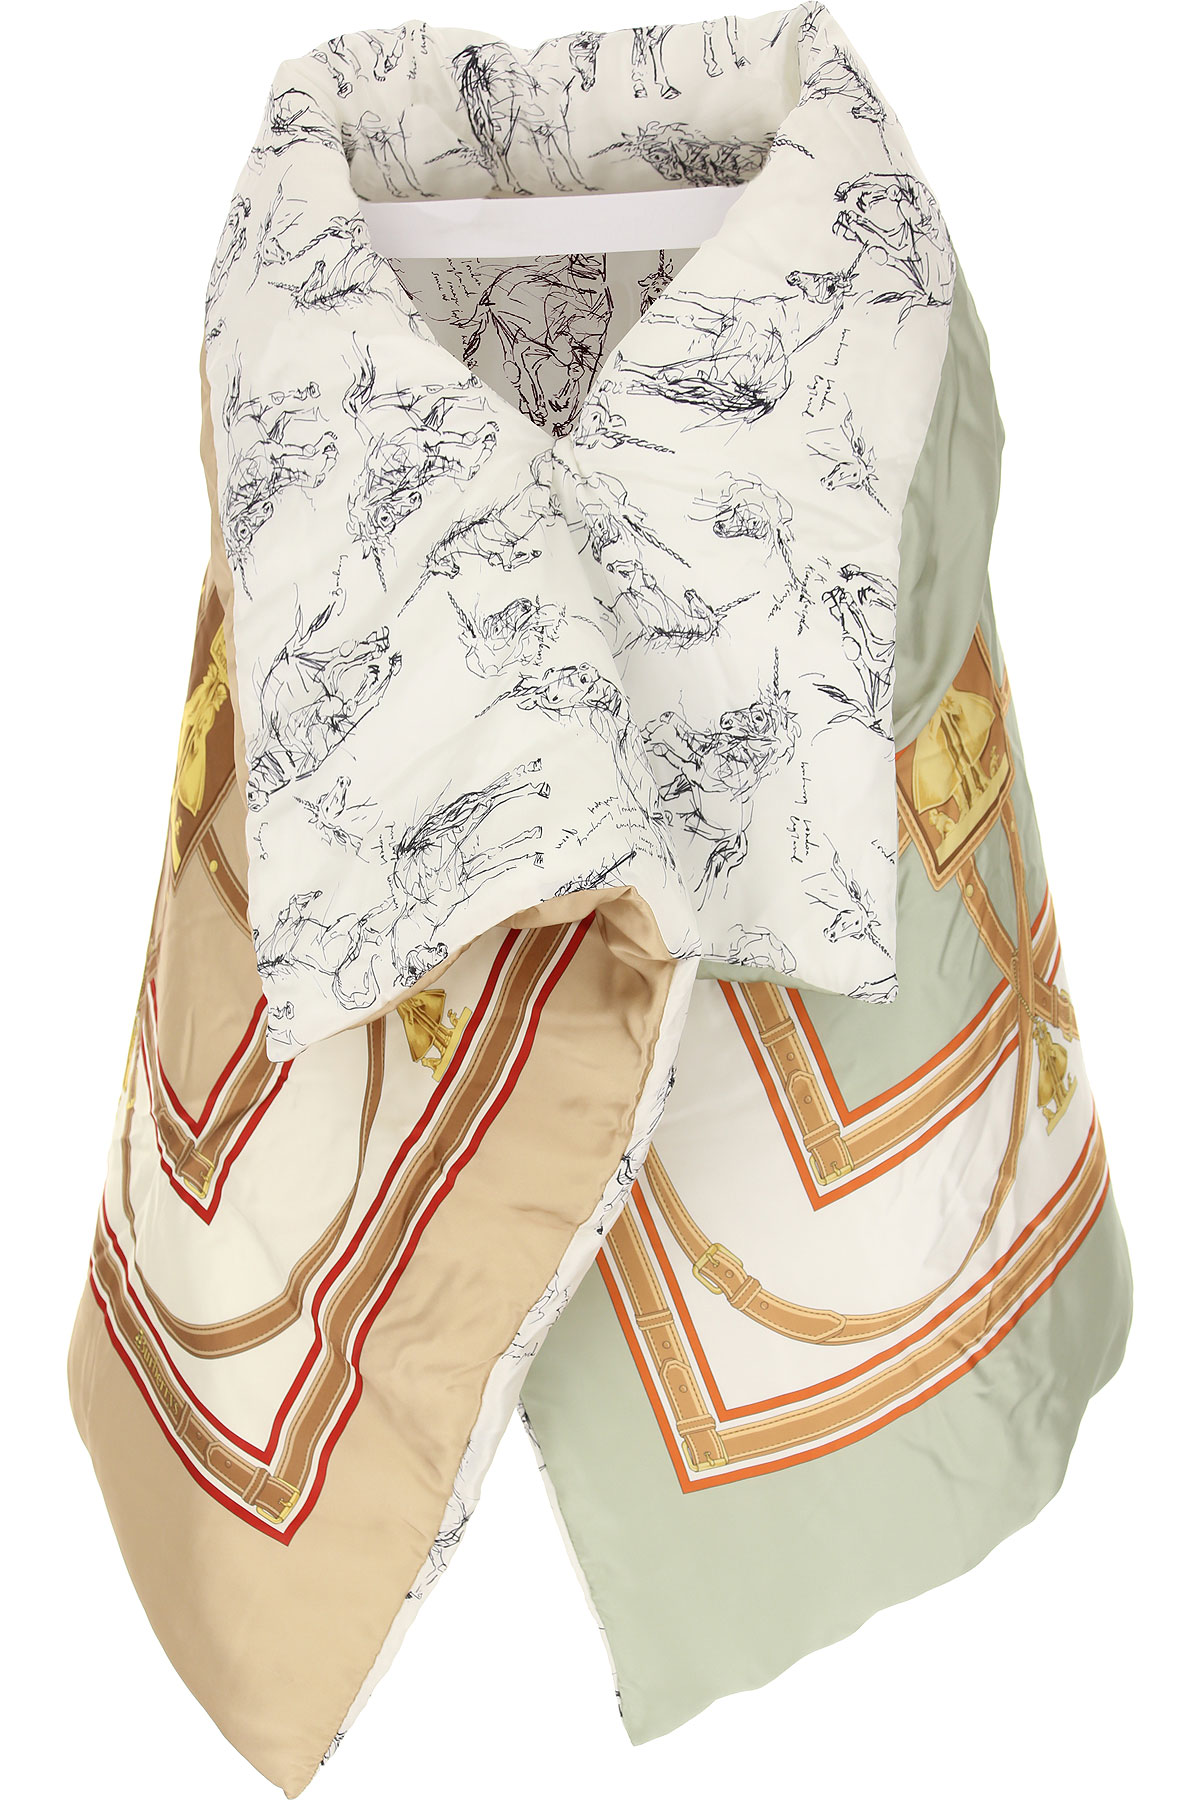 Burberry Scarf for Women On Sale in Outlet, Multicolor, Silk, 2019